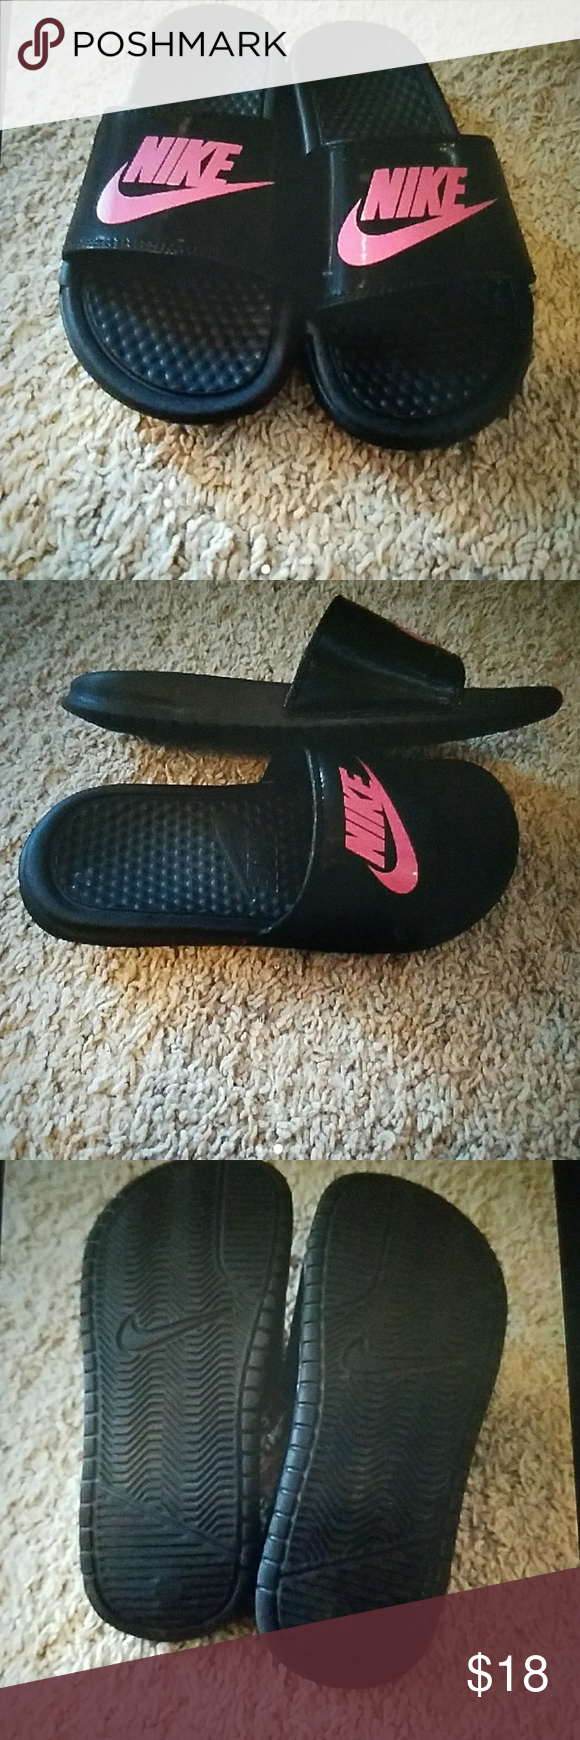 acbfd7da6b4848 Girls Nike Sandals sz3 Good gently used condition light wear signs Nike  Shoes Sandals   Flip Flops